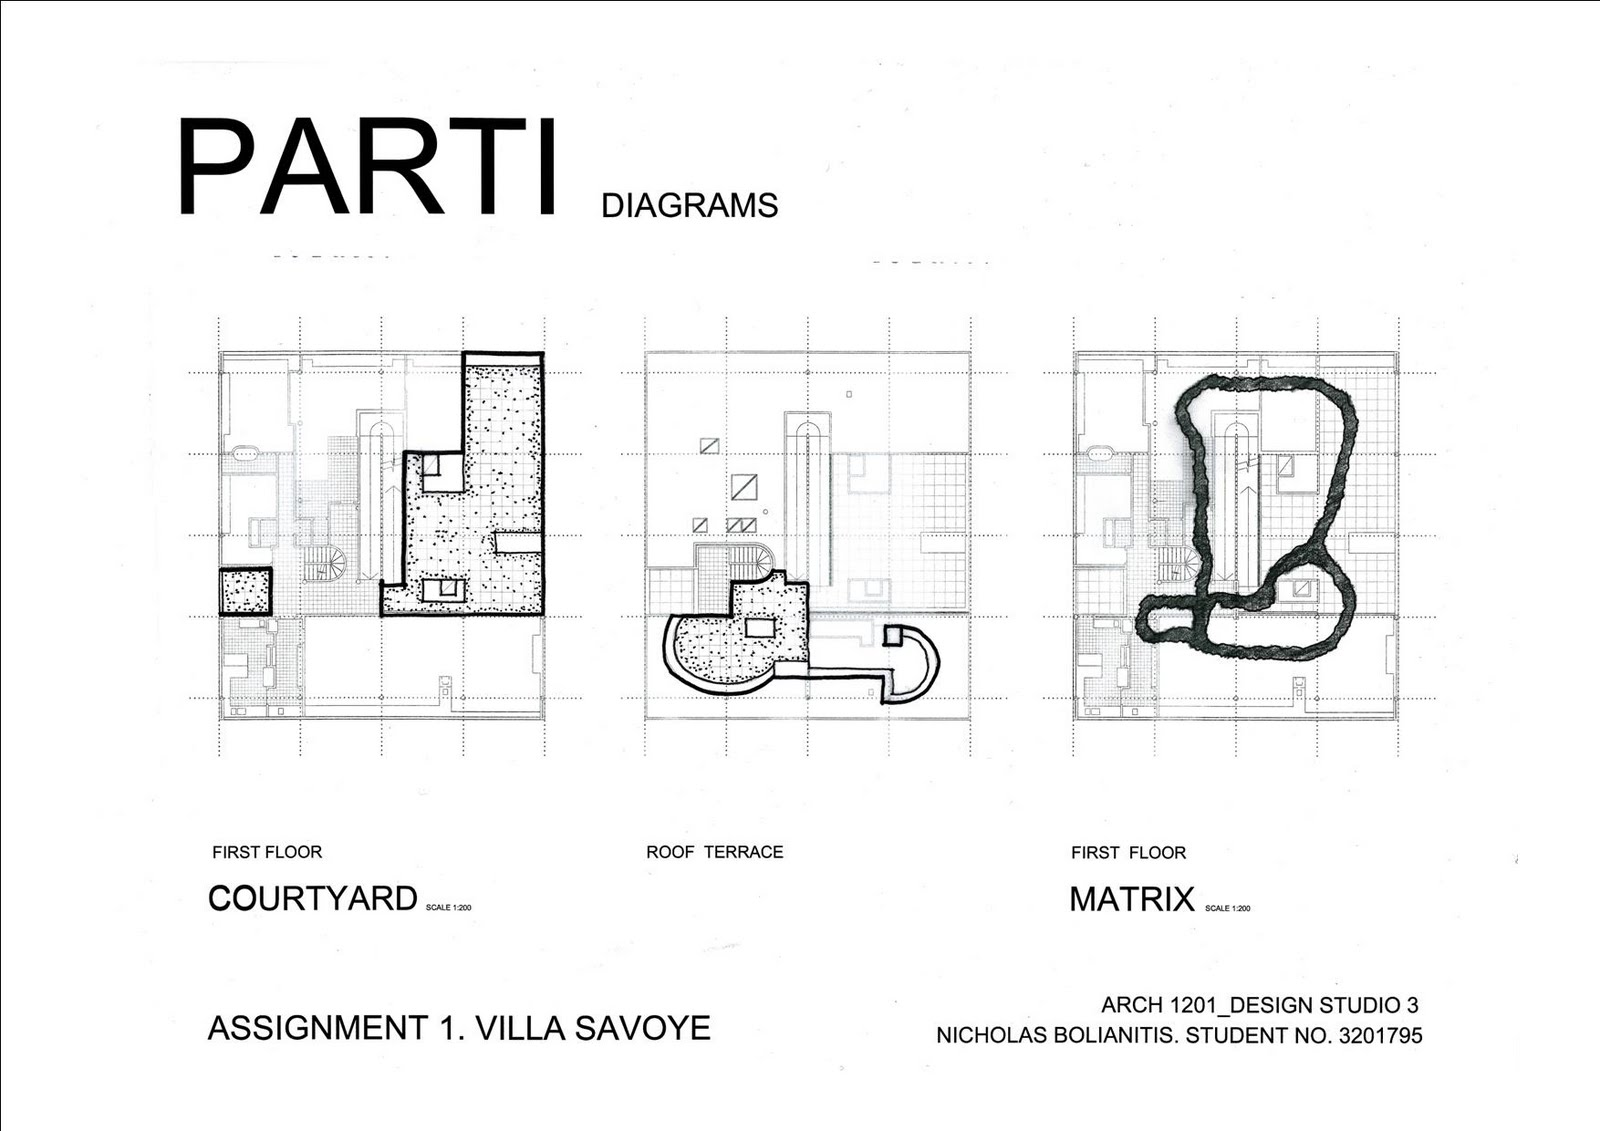 House Floor Plans Com Nicholas Bolianitis Final Drawings Parti And Poche